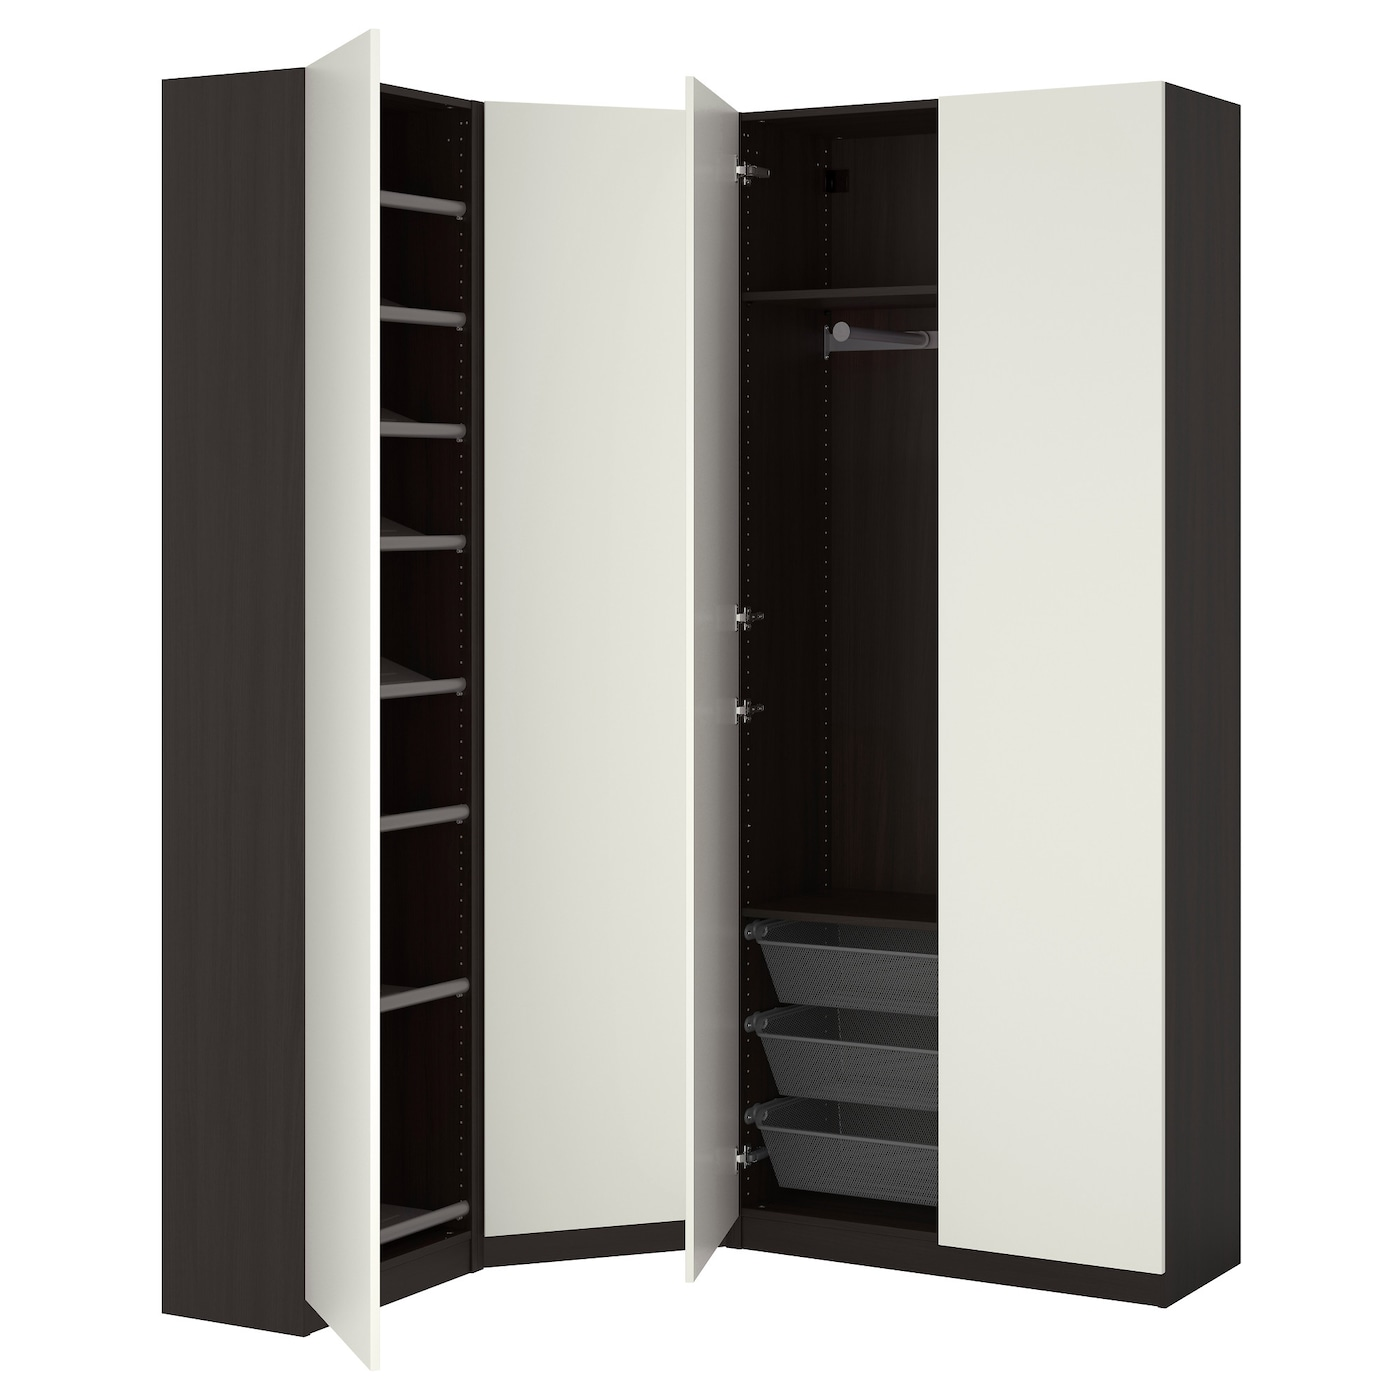 Pax wardrobe black brown ballstad white 123 173x38x236 cm - Porte coulissante dressing ikea ...